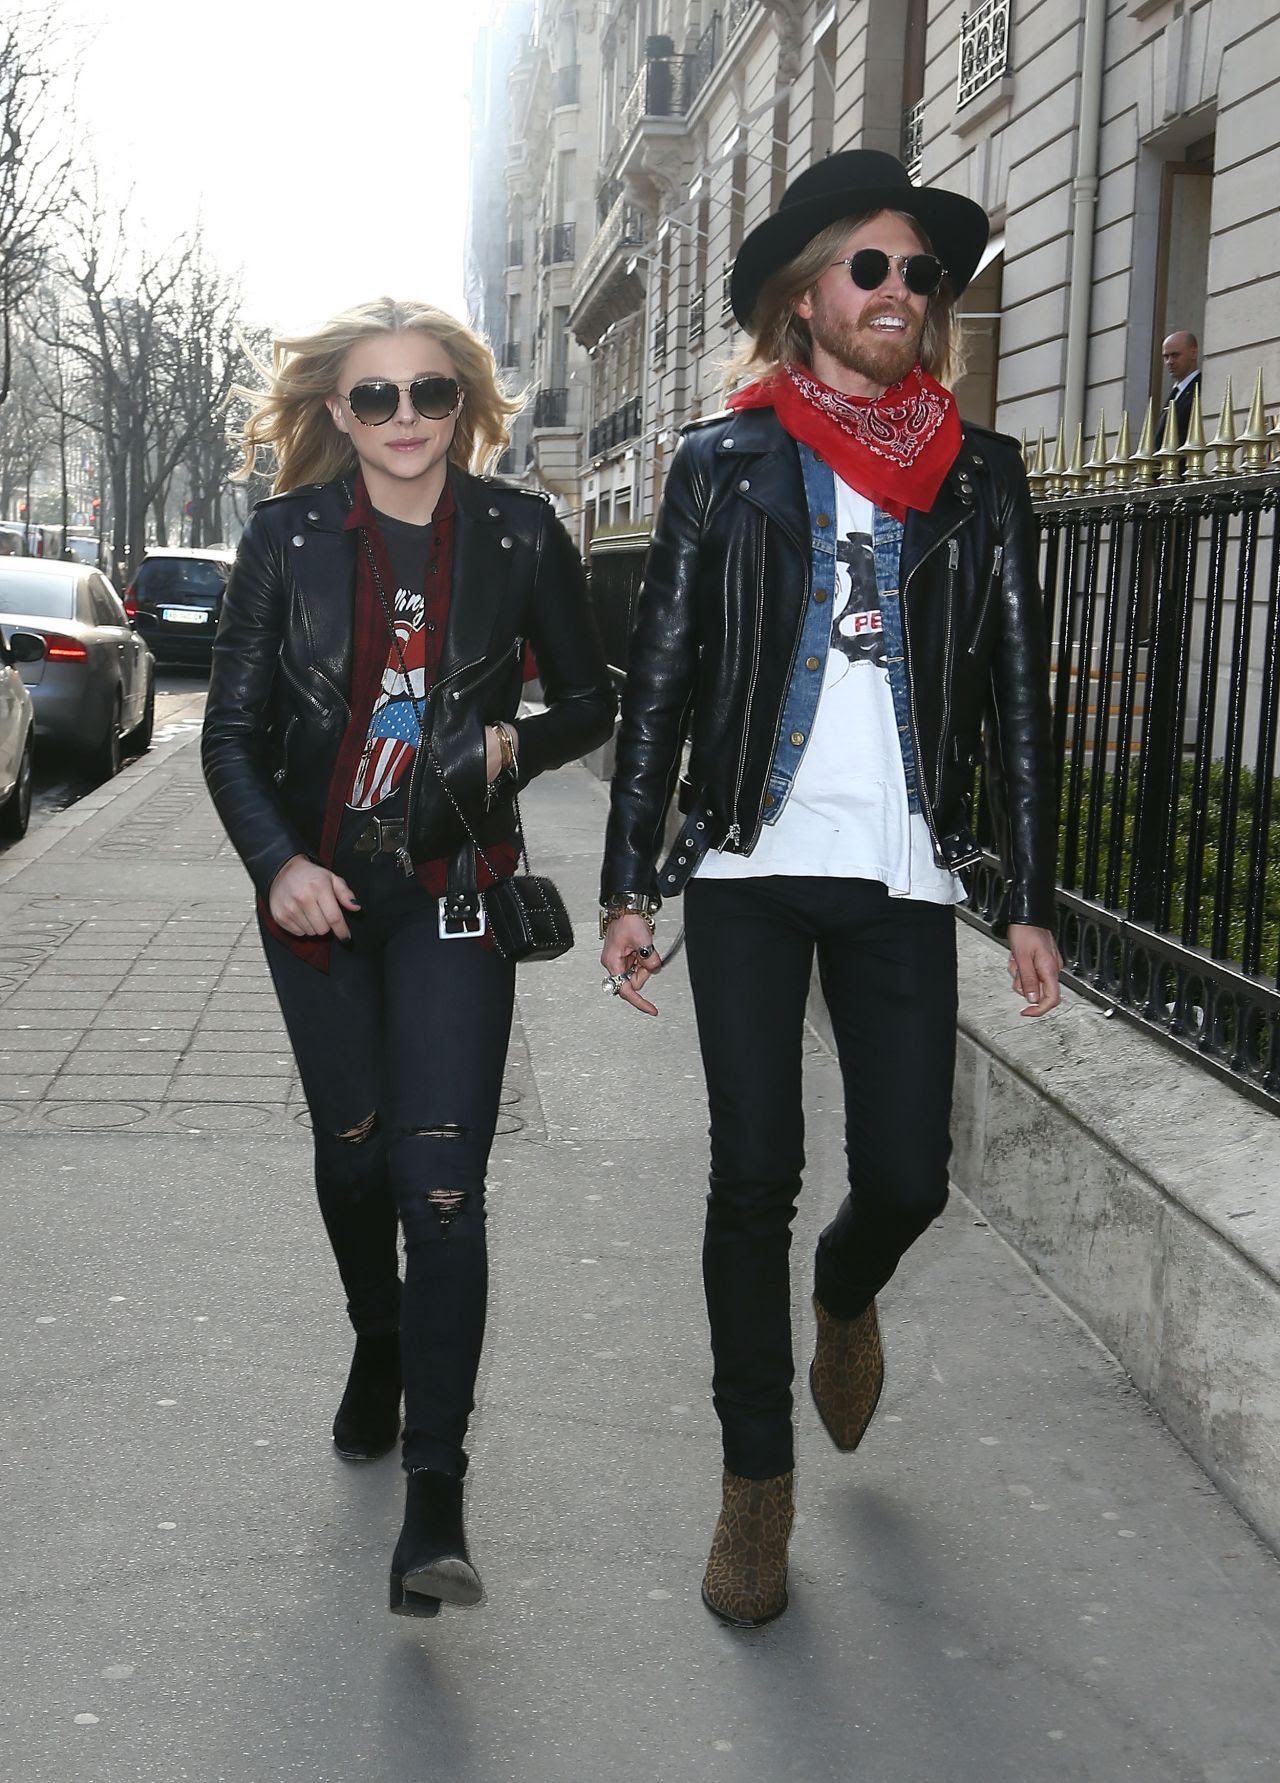 http://celebmafia.com/wp-content/uploads/2015/03/chloe-moretz-street-style-out-in-paris-march-2015_2.jpg